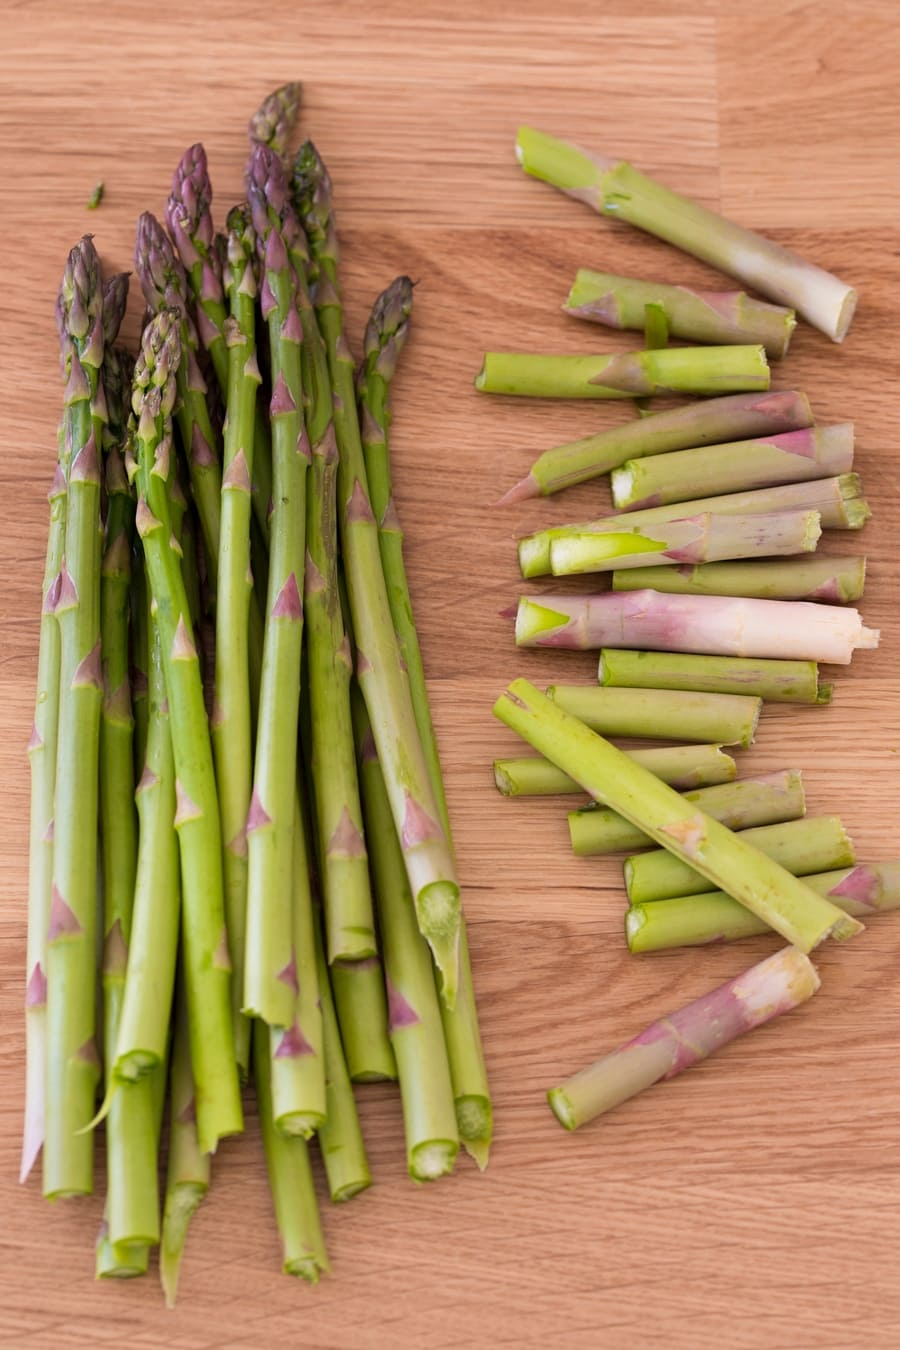 Asparagus stalks with woody ends separated.